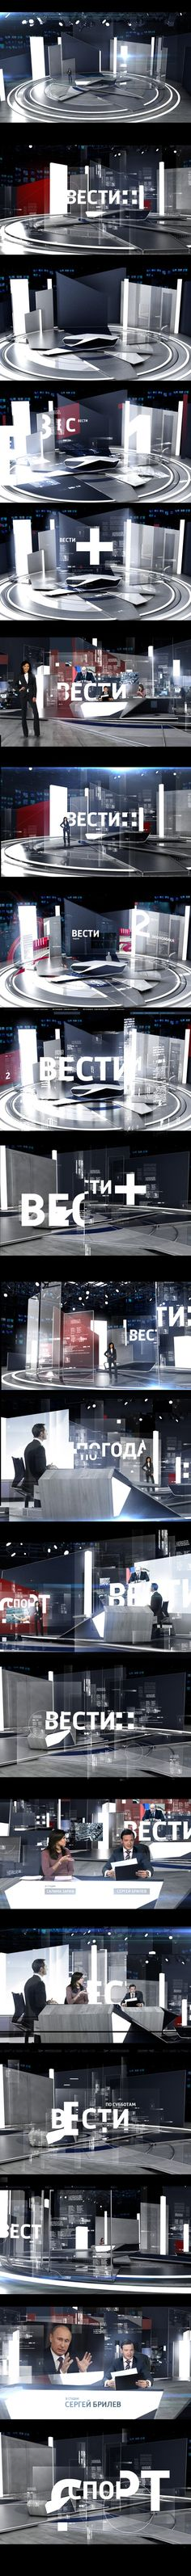 RUSSIA_1 channel NEWS STUDIO by egor antonov, via Behance. Styleframes for broadcast design. Motion graphics